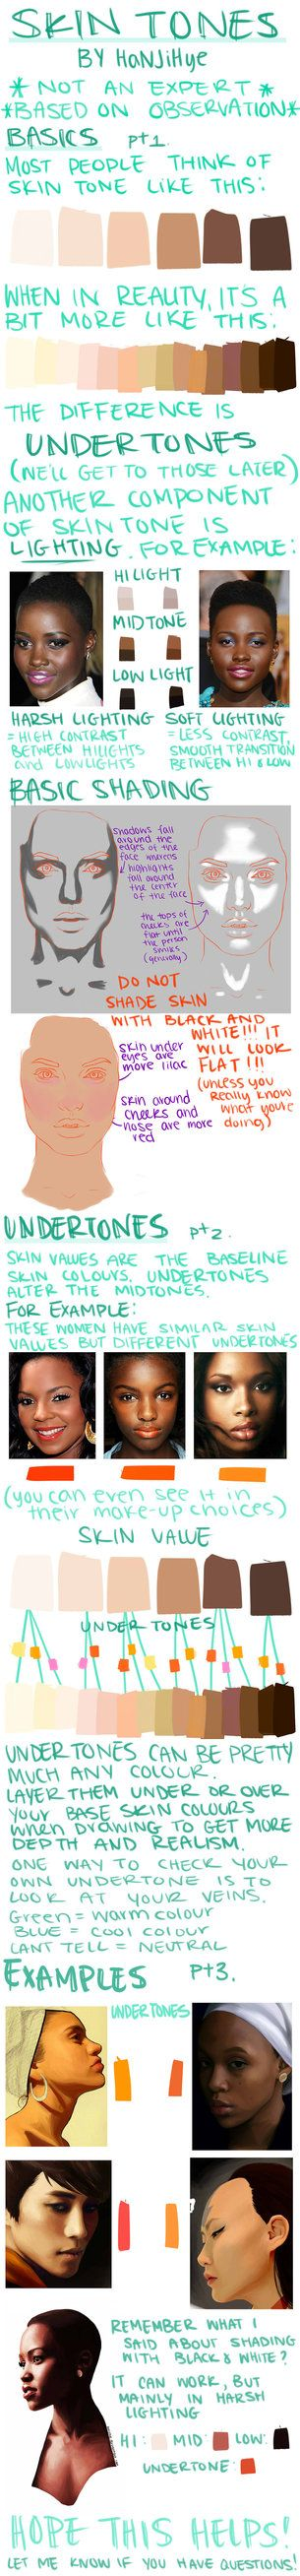 Let me know if you have questions!!! And let me know if there's any other tutorials you want to see Eyes of Different Races Tutorial: Art Tumblr-peaceofseoul.tumblr.com/ Personal Tumblr...